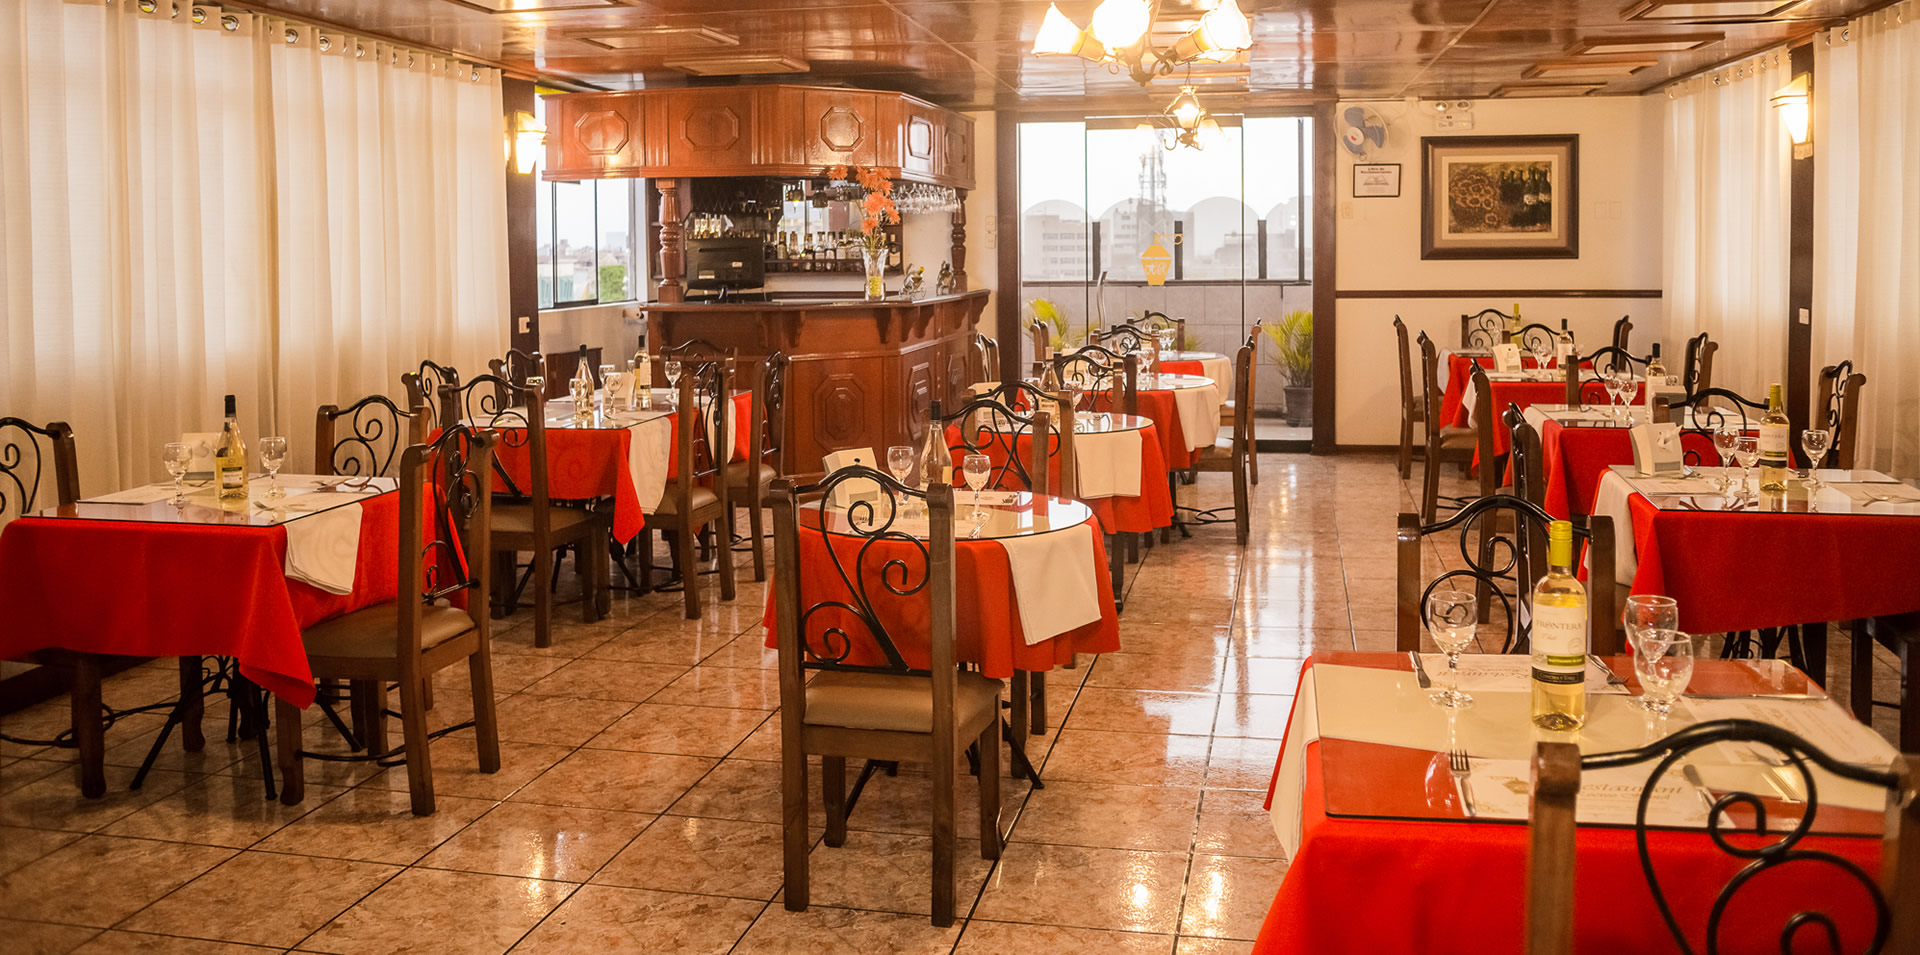 Recreo Hotel - Habitaciones - Noche de Bodas - Suite - Matrimonial - Triple - Doble - Simple - Restaurant & Bar - LOBBY